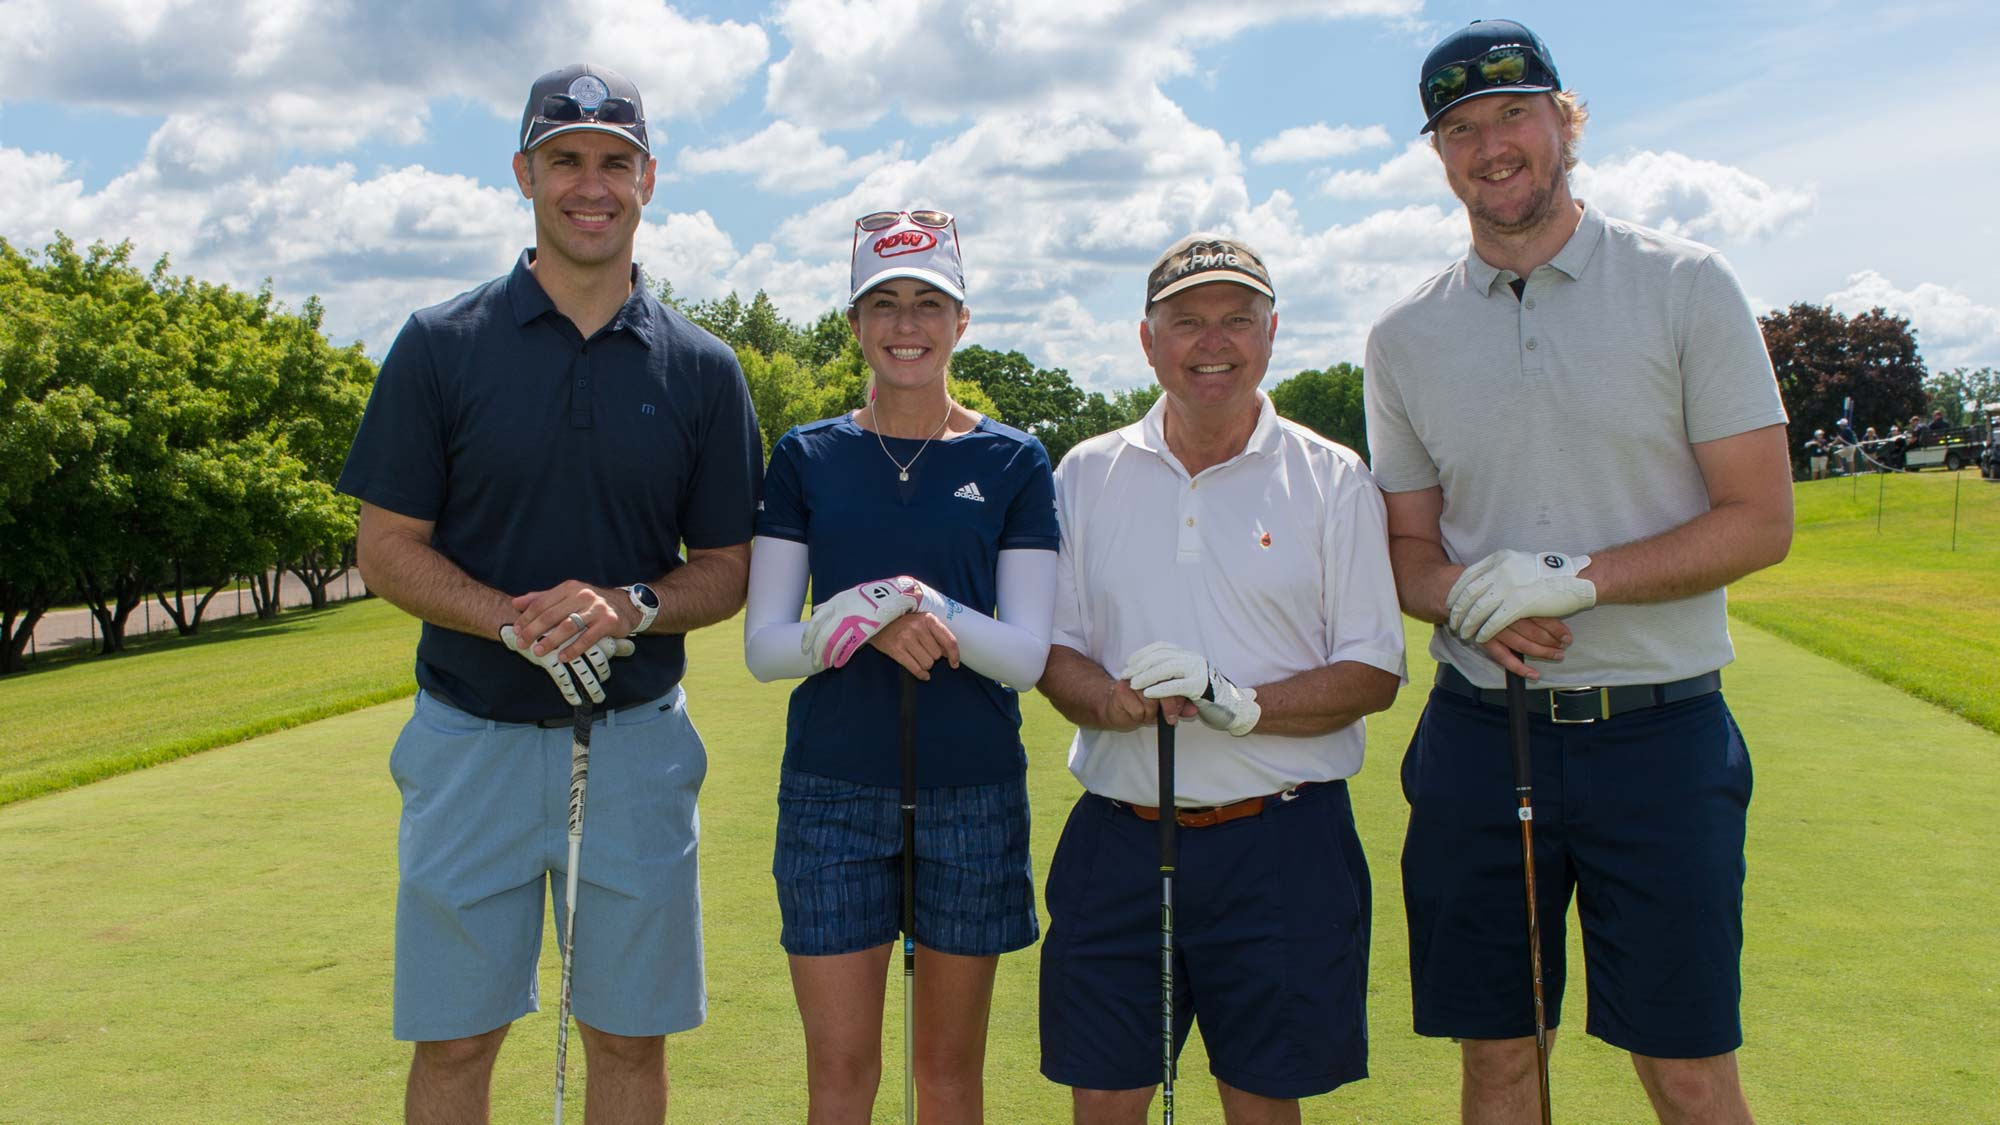 Paula Creamer, Sven Holmes, Devan Dubnyk and Joe Mauer during the Pro-Am Tournament for the 65th KPMG Women's PGA Championship